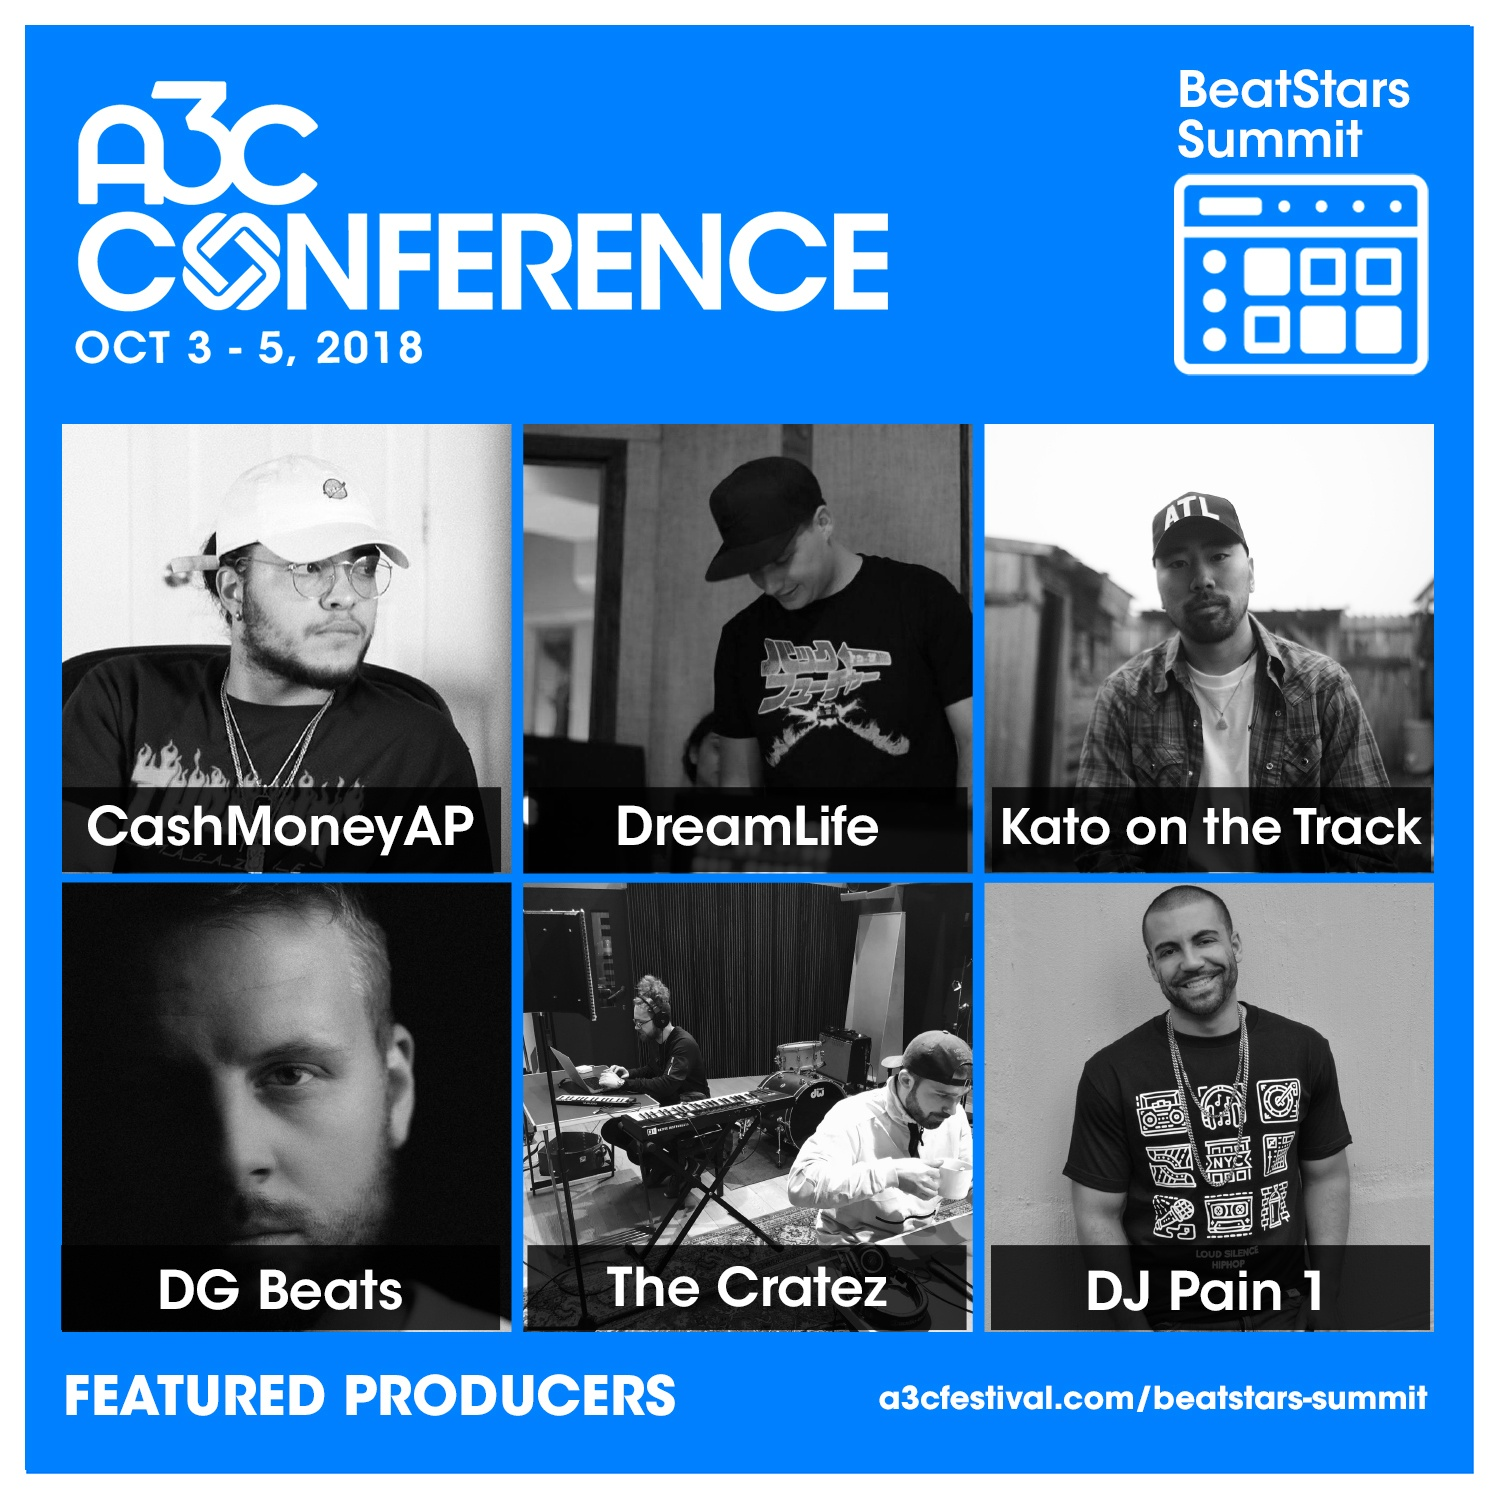 BeatStarsSummit-Producers